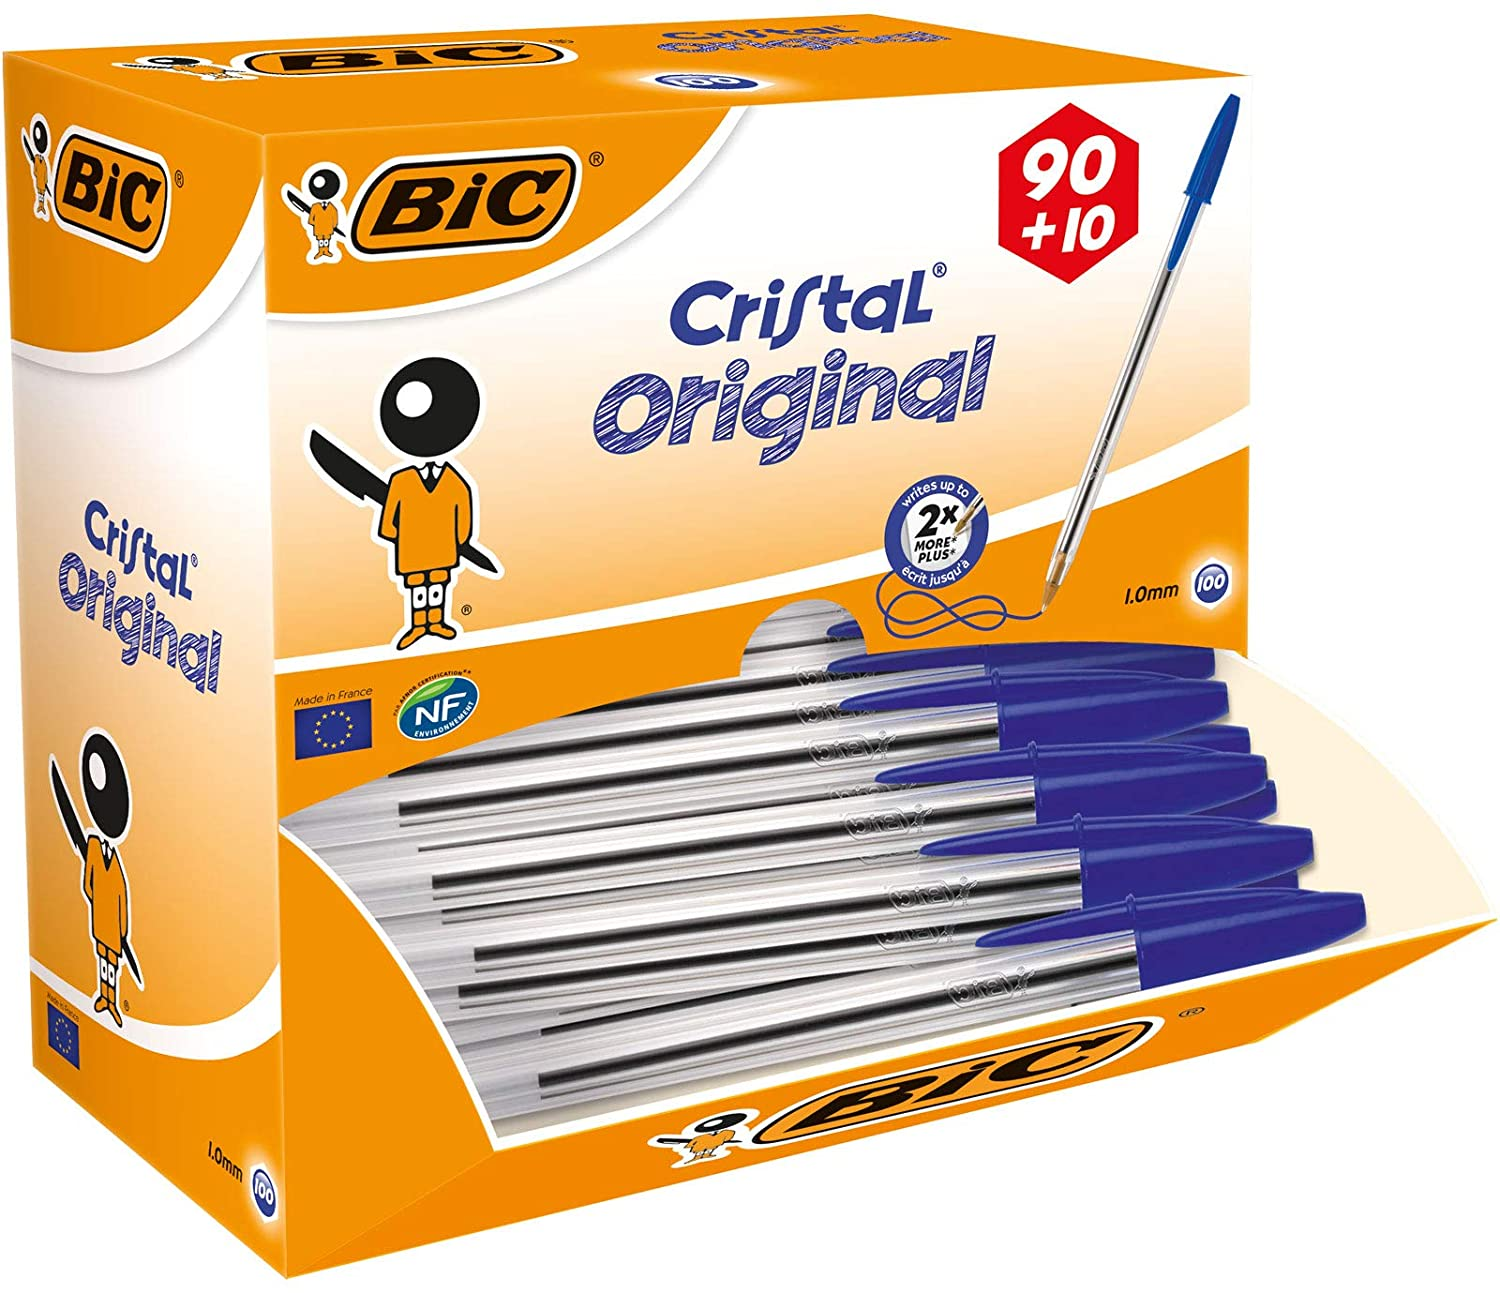 Pens (Large Packs)